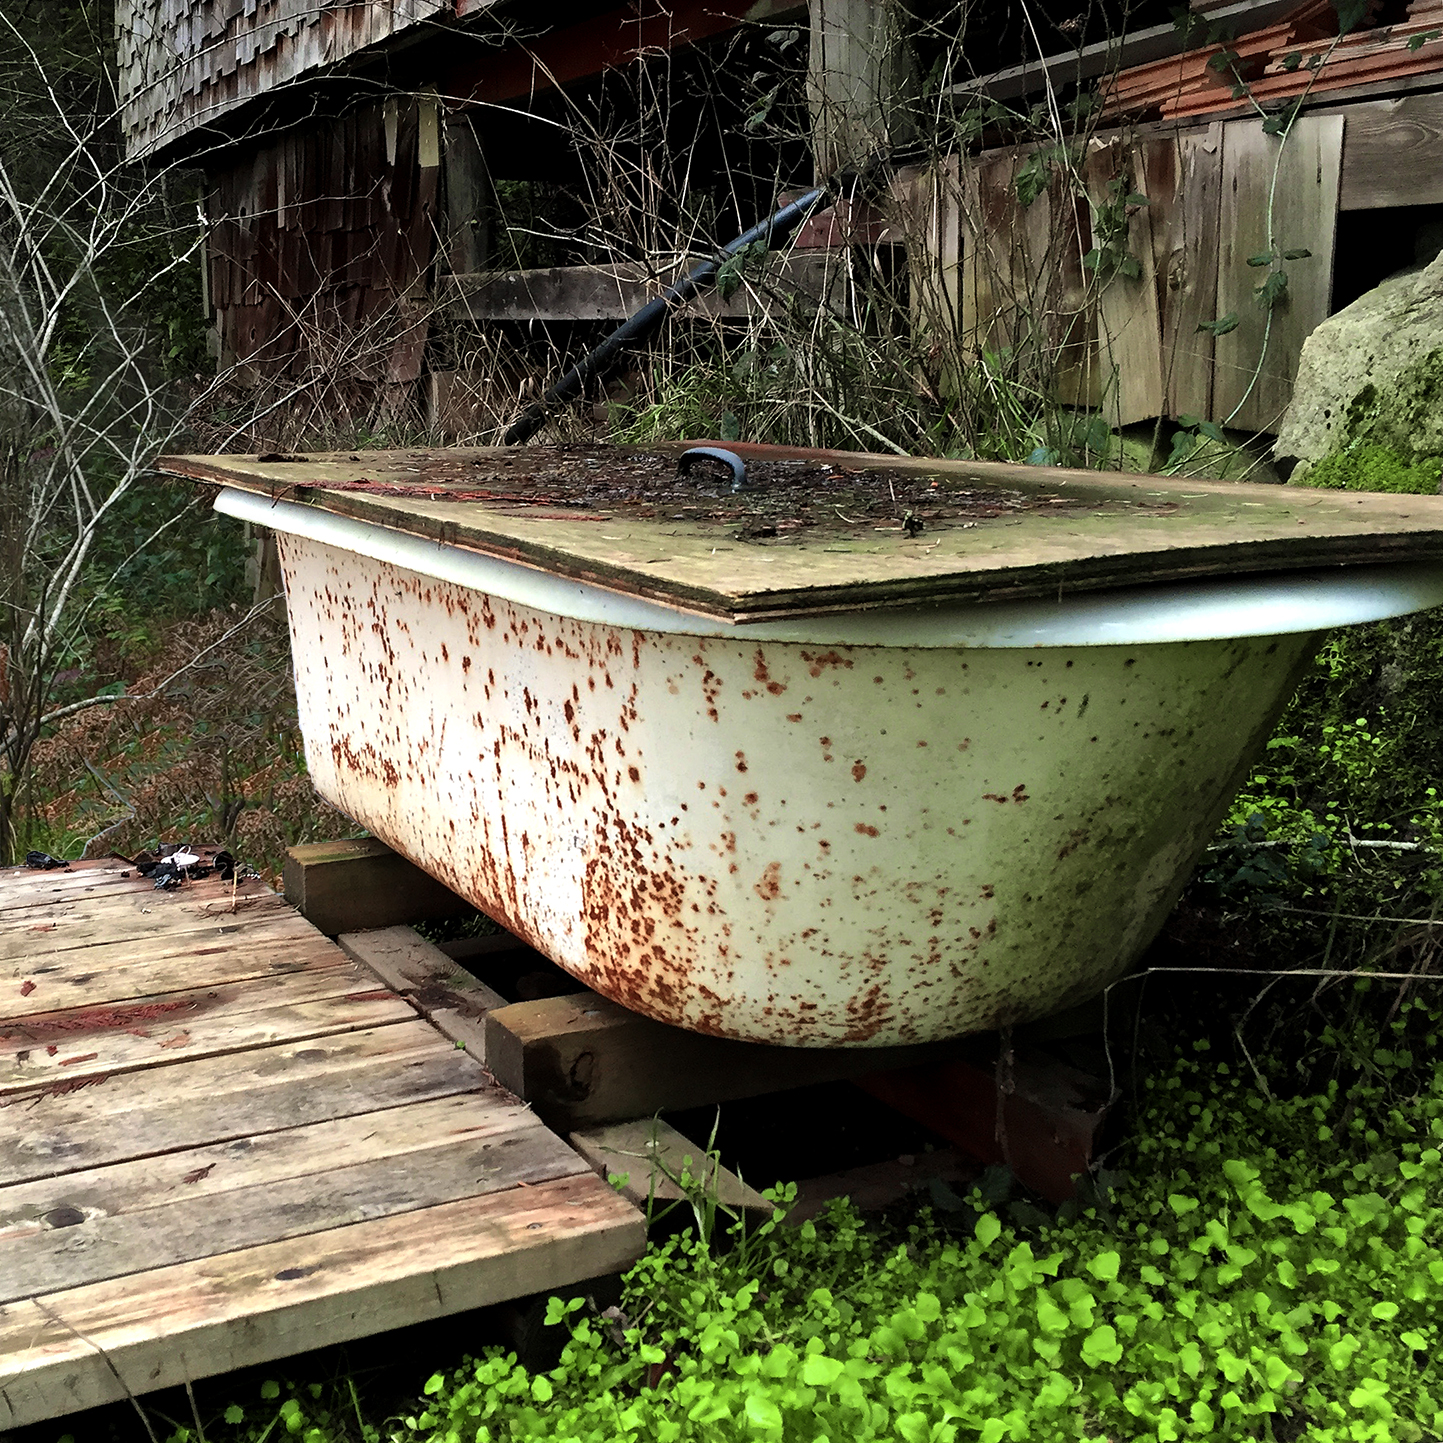 In the winter time, when the lake is too cold for a dip, water can be pumped into this wood-fired bathtub and you can have hot soak under the trees and the stars.